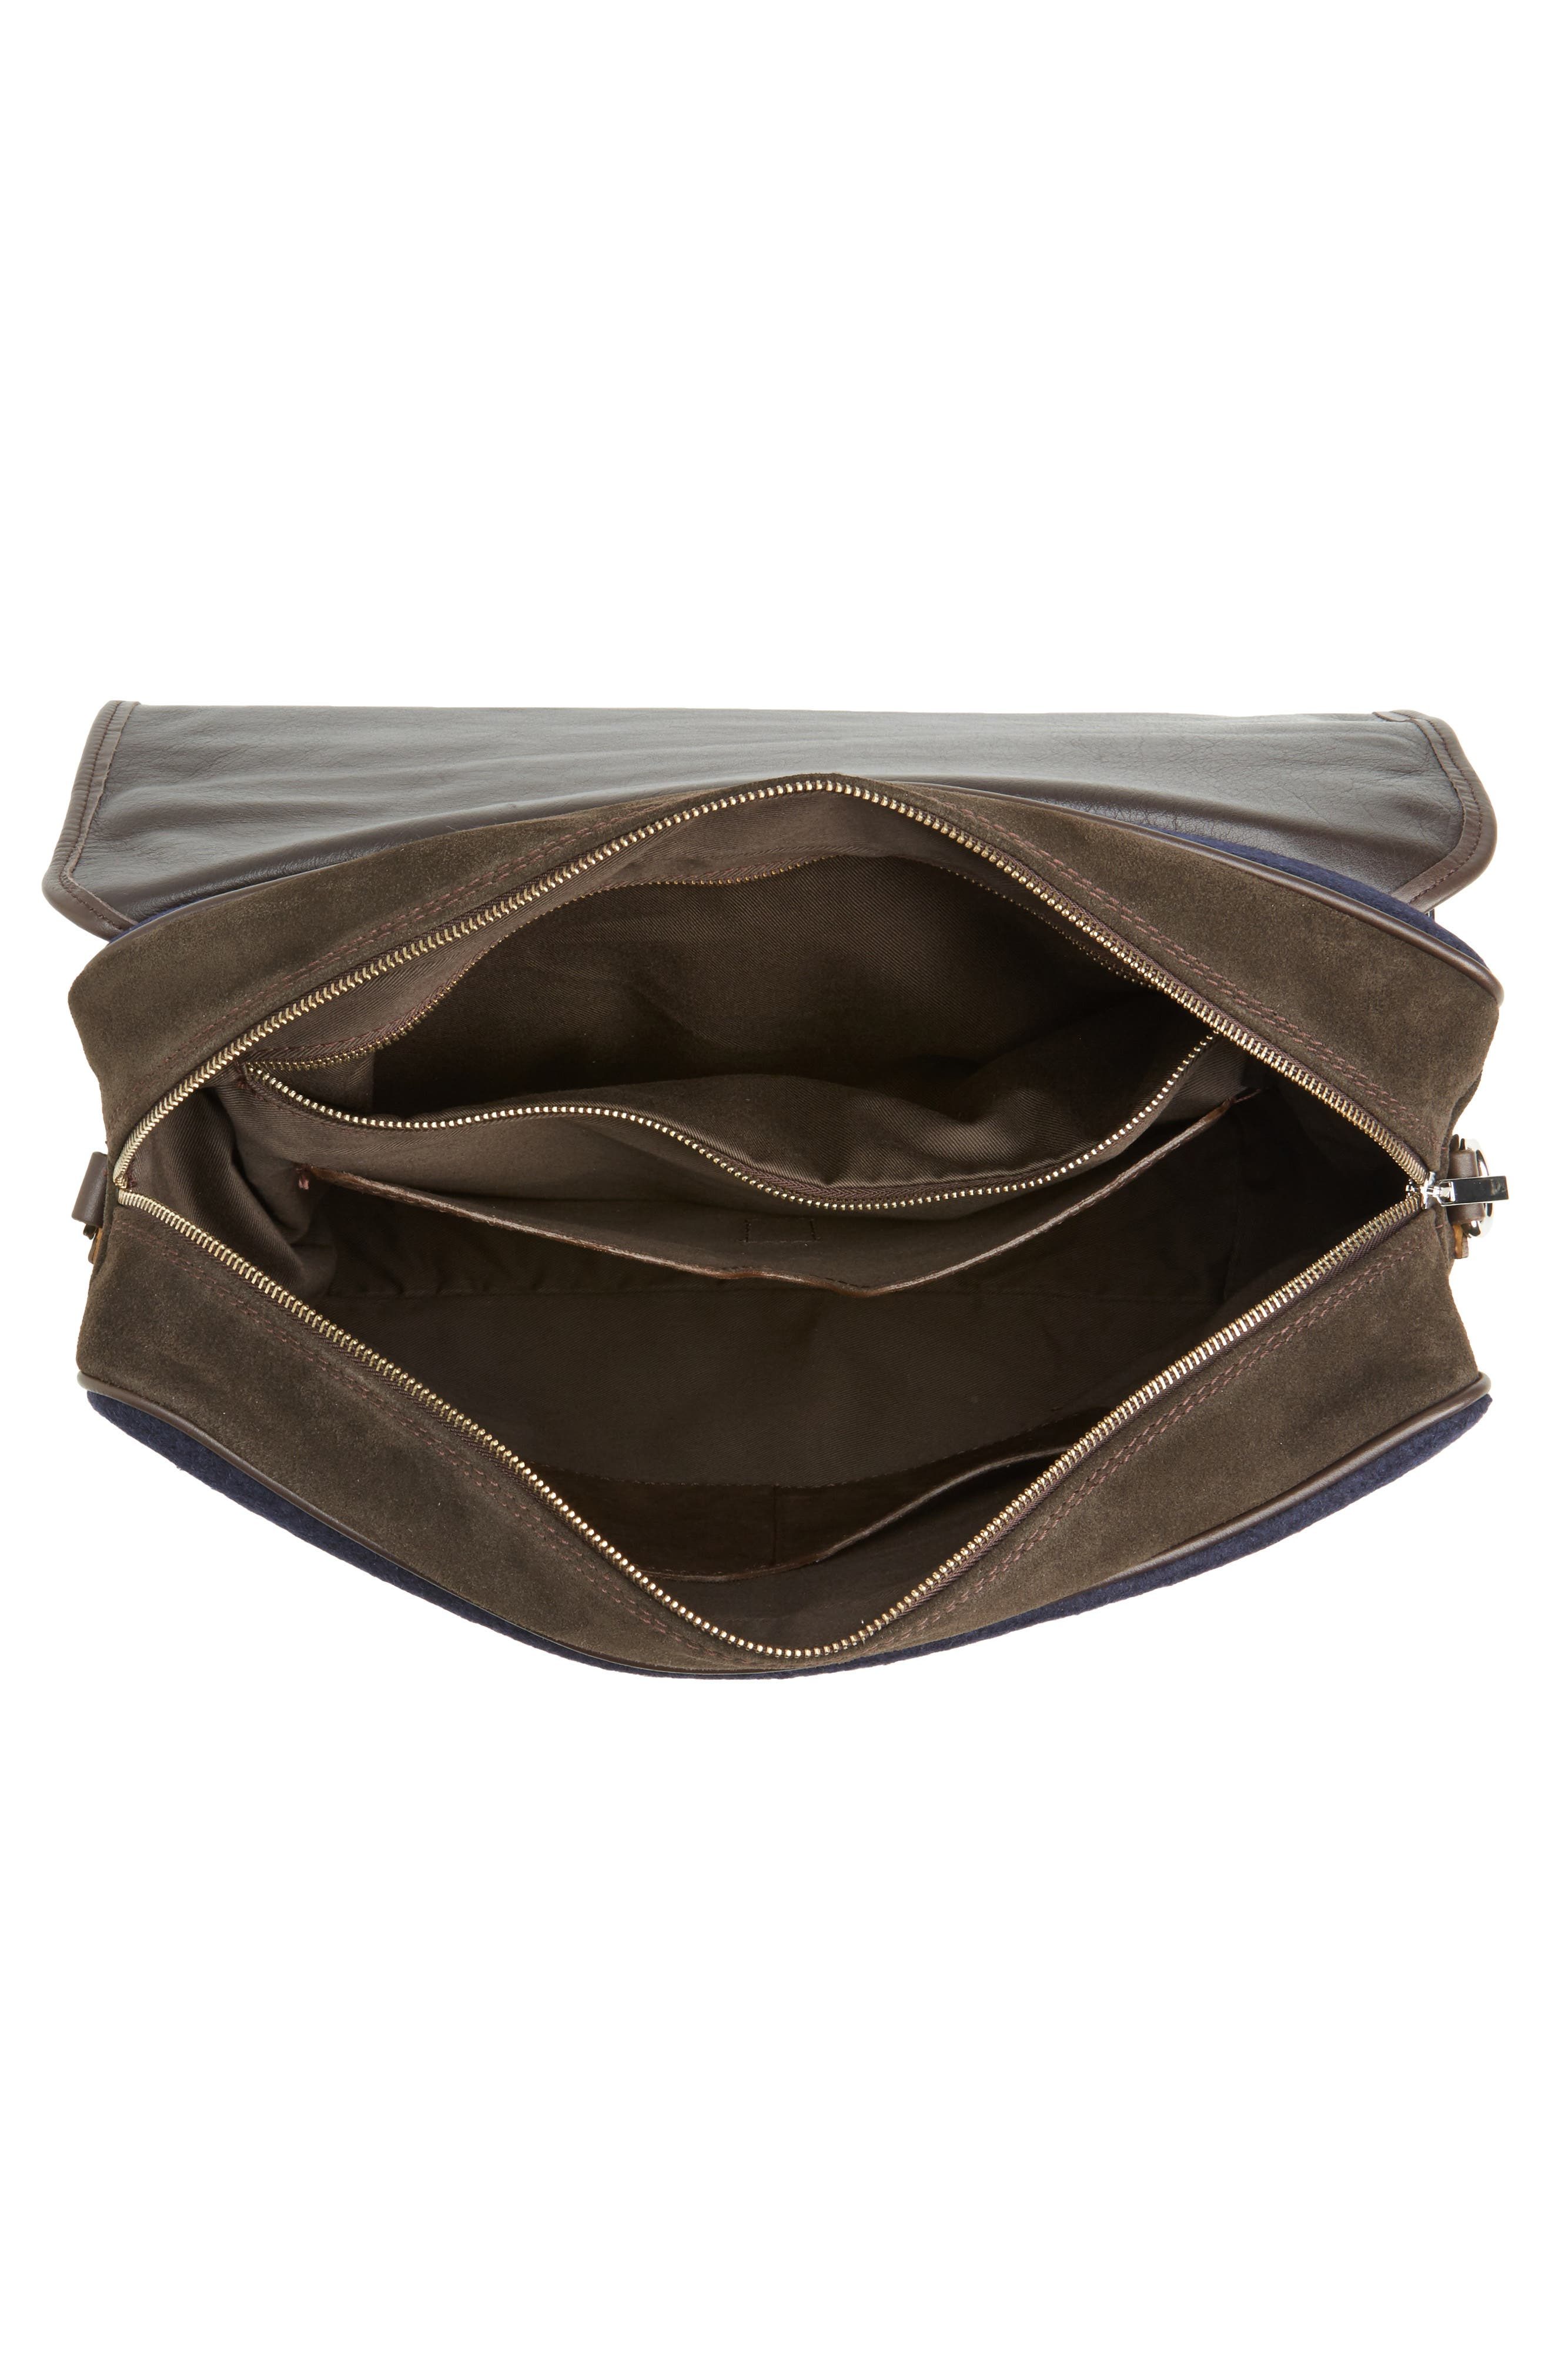 Leather & Wool Convertible Briefcase,                             Alternate thumbnail 4, color,                             205